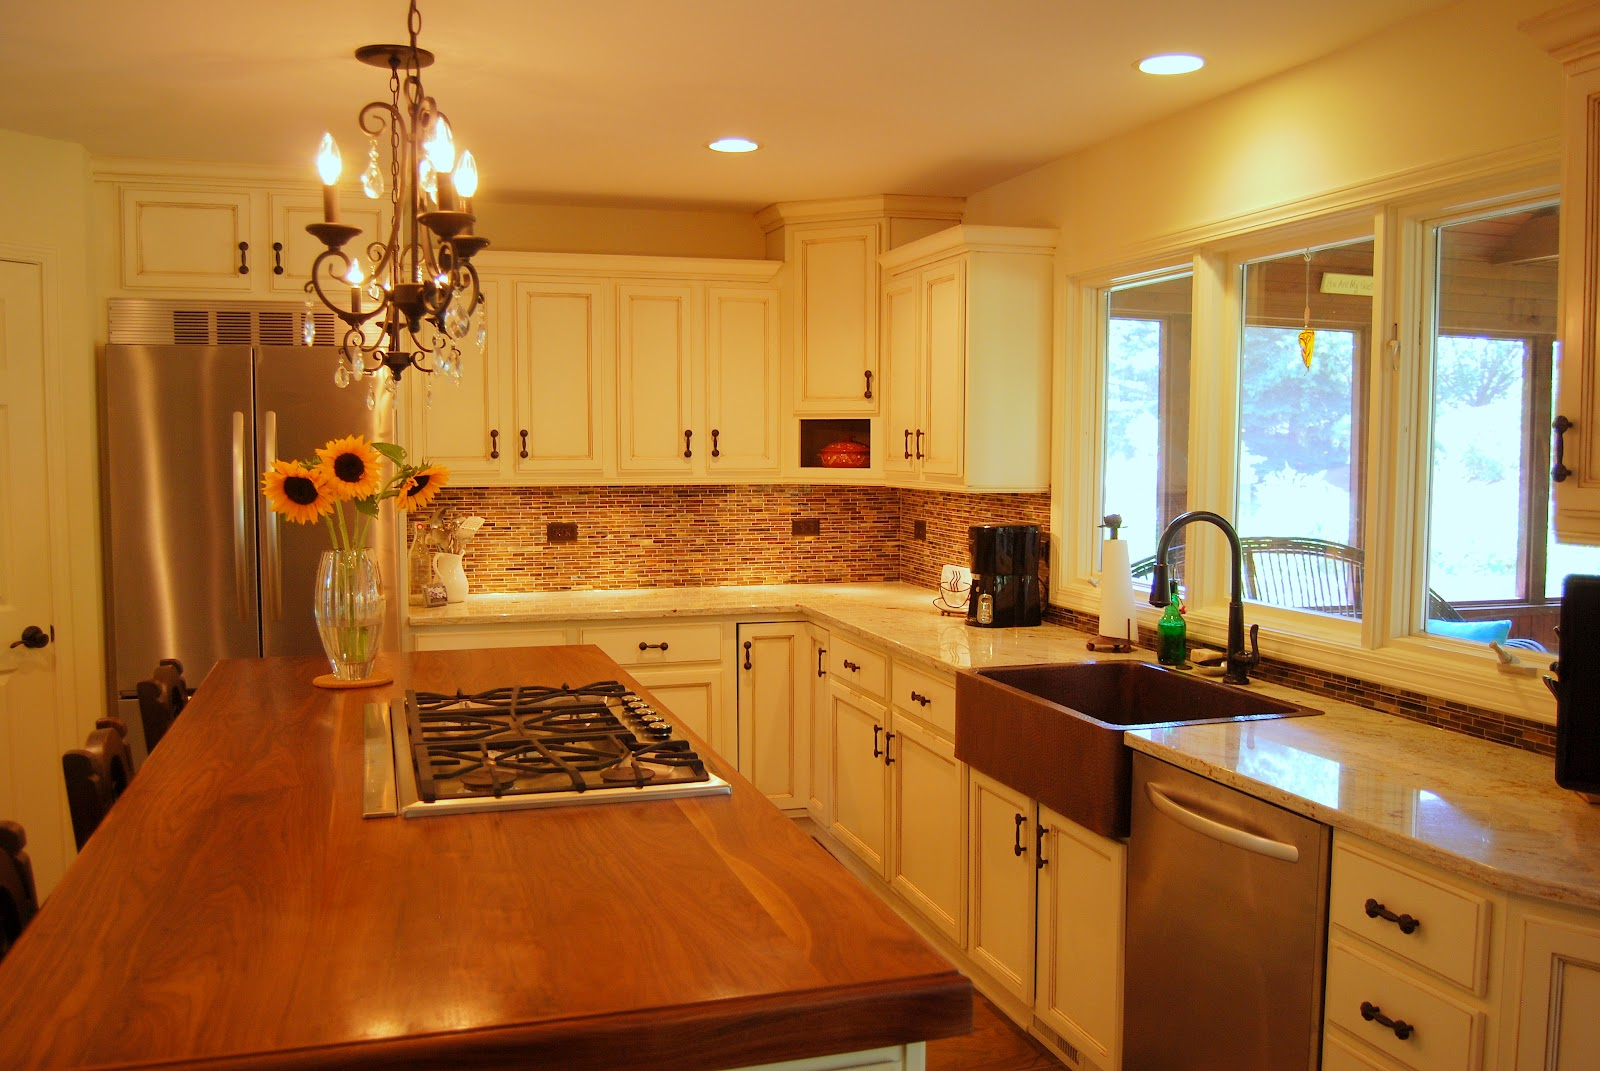 Awesome Kitchen Southern Improvement (View 3 of 10)